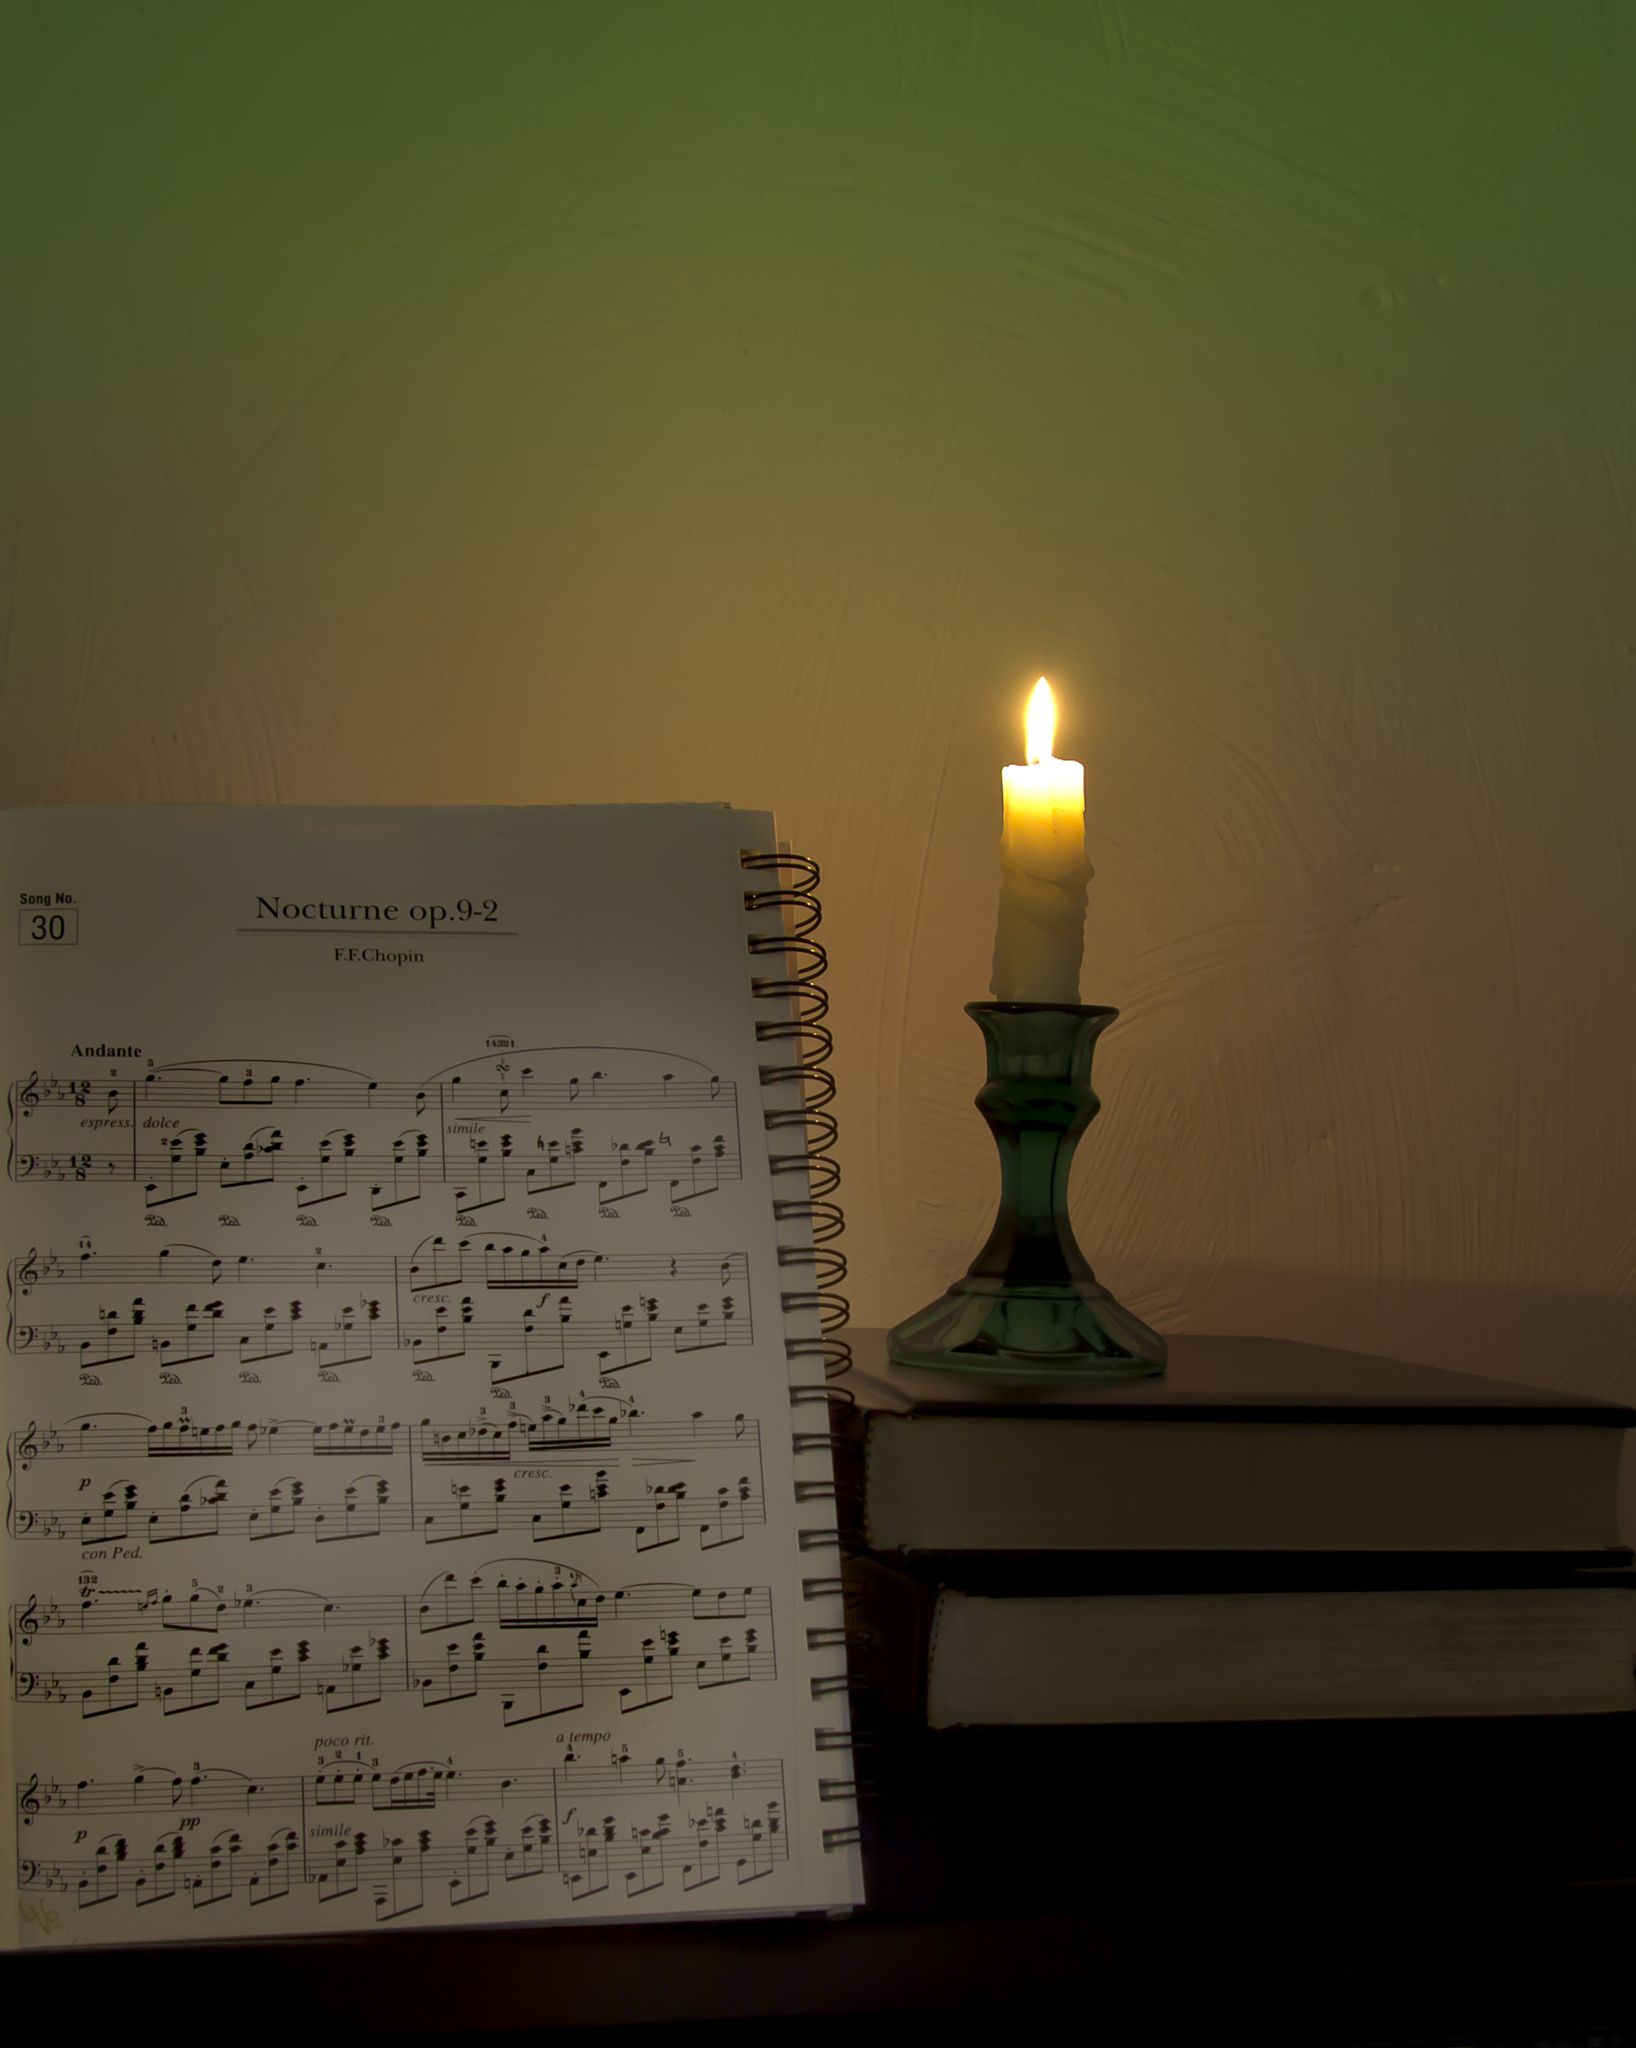 By candlelight by Sheila Kavanagh on 500px